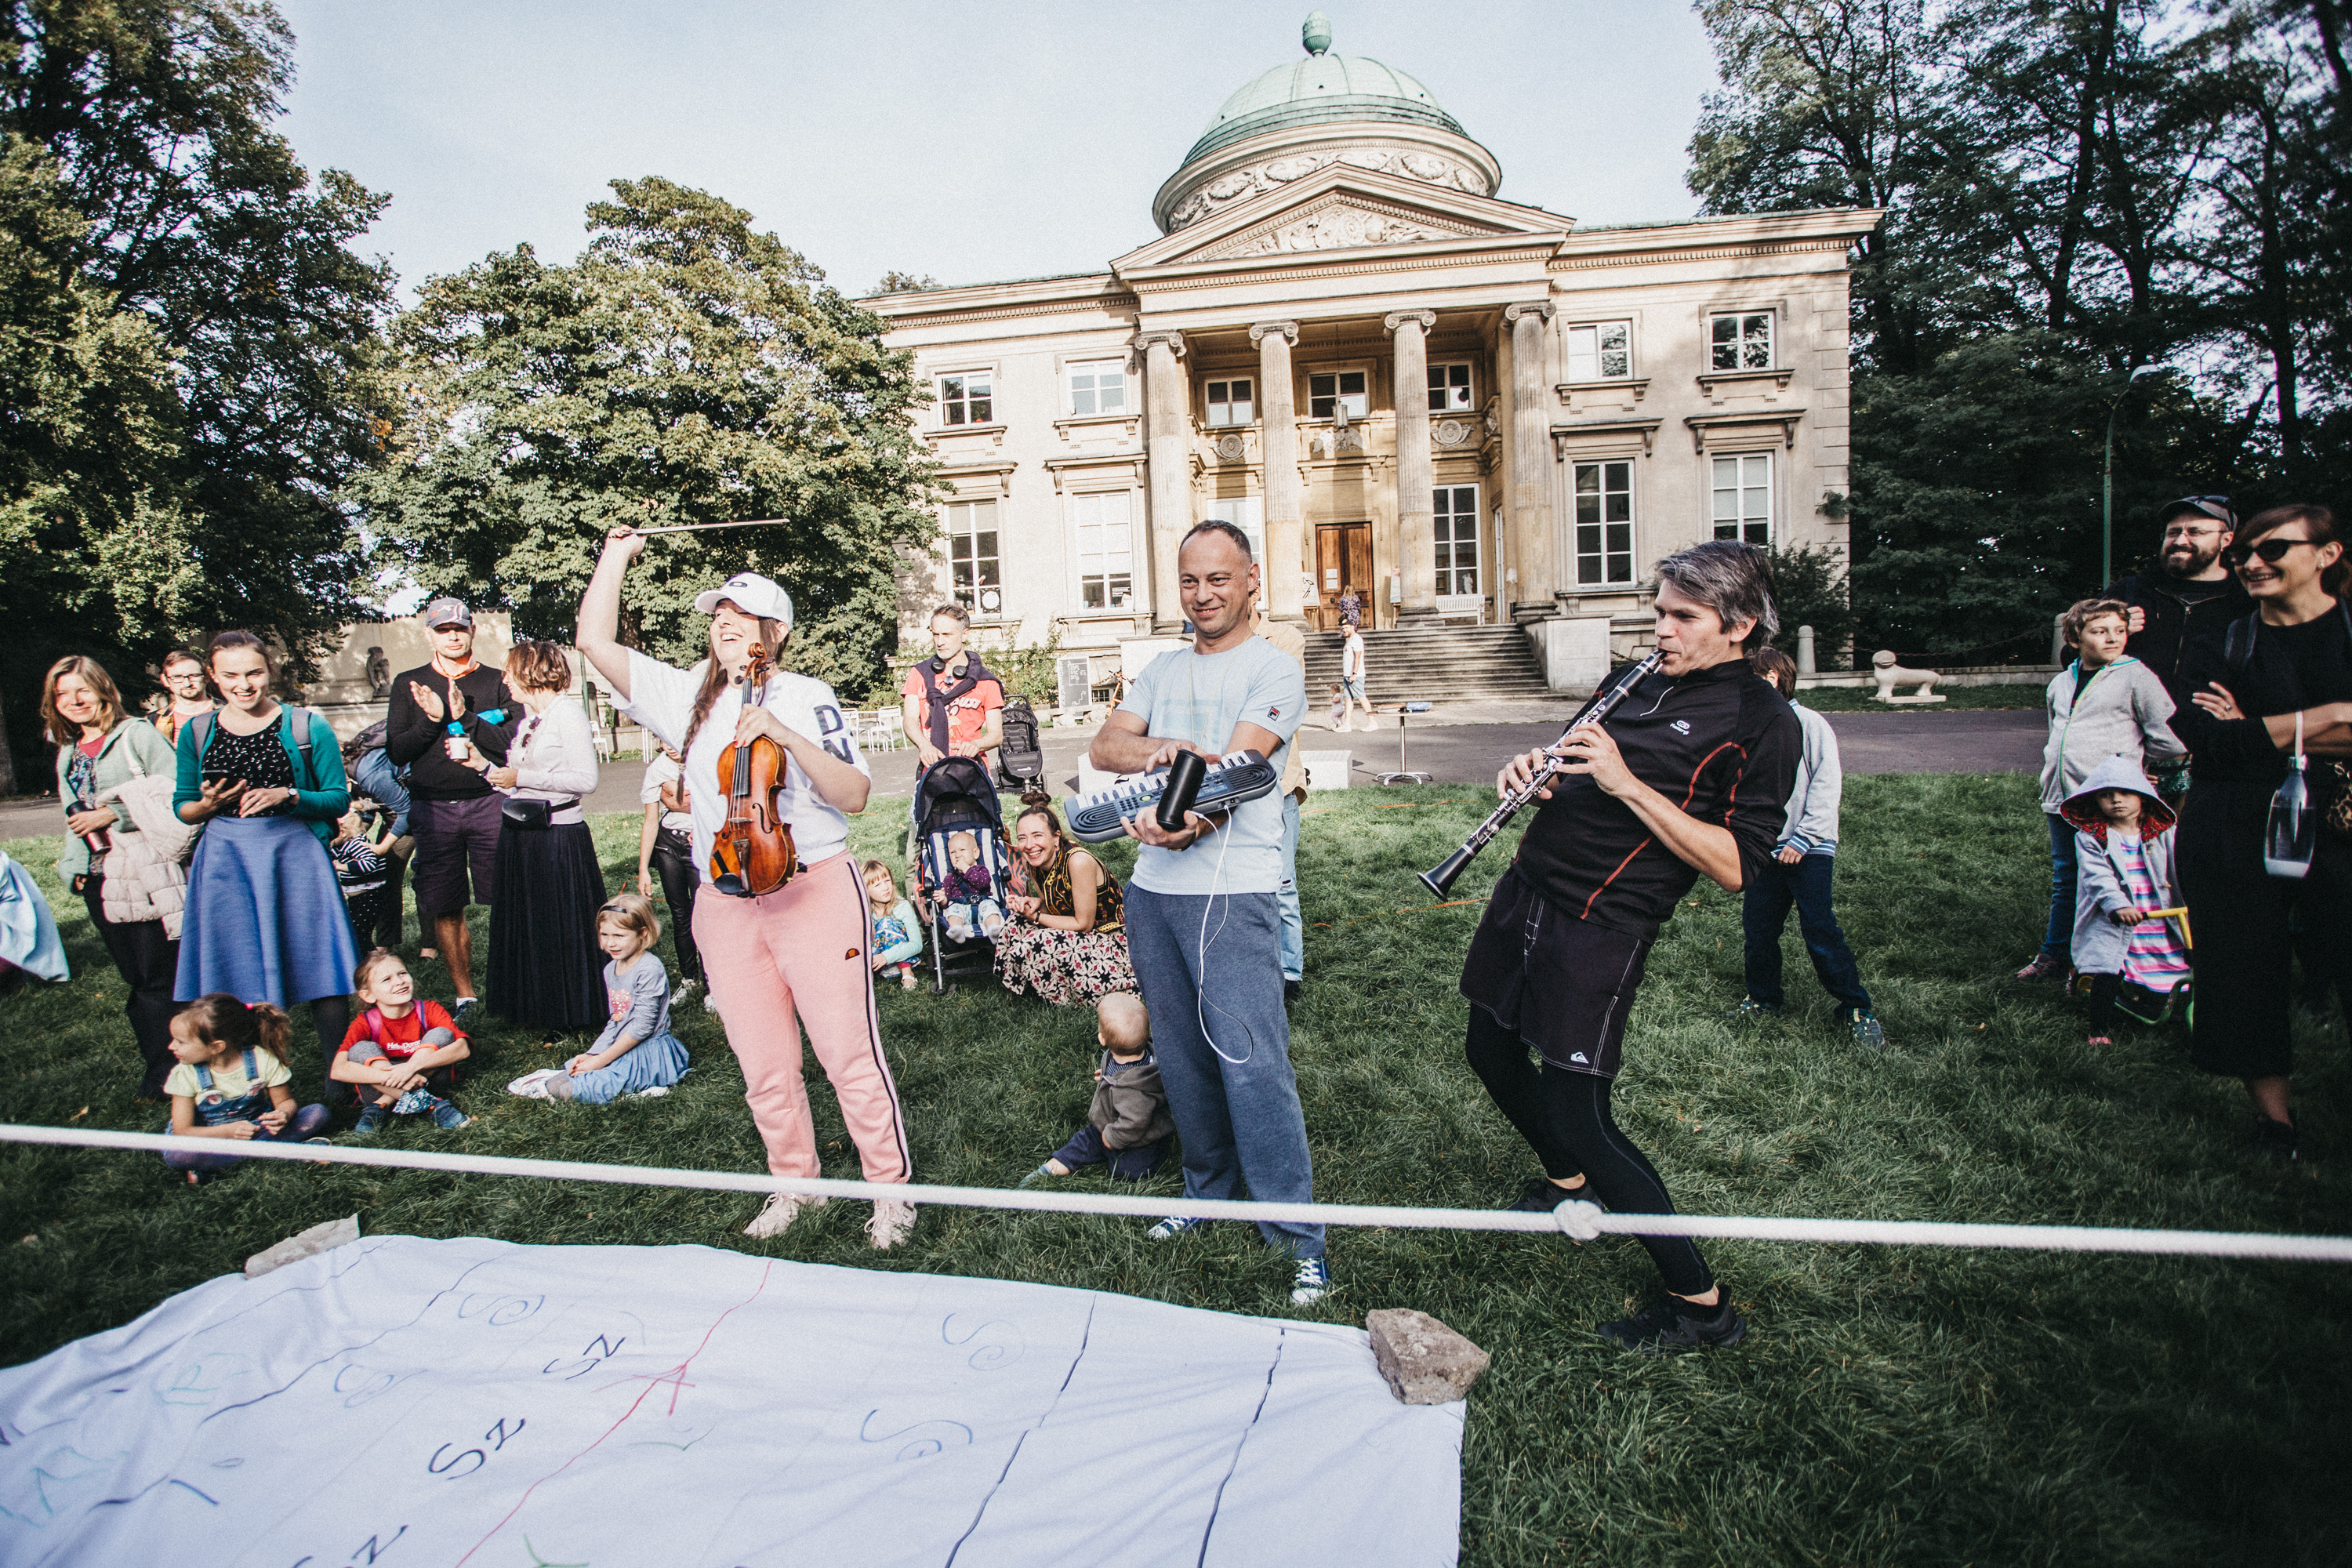 Little Warsaw Autumn 2020, Kwartludium - Musical Olympics, photo by Grzegorz Mart